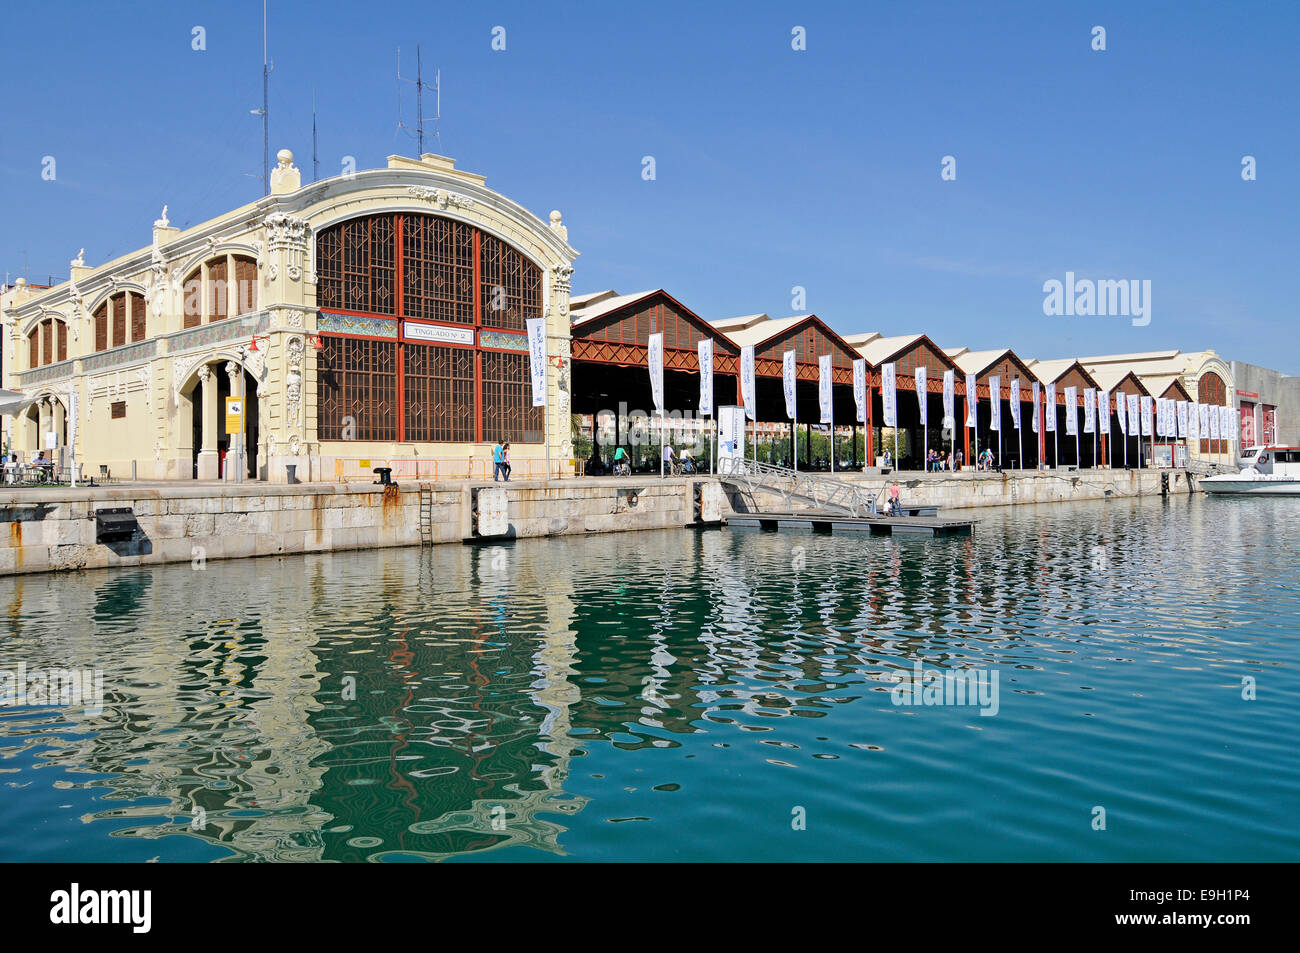 Warehouses in the port of Valencia, Valencian Community, Spain - Stock Image